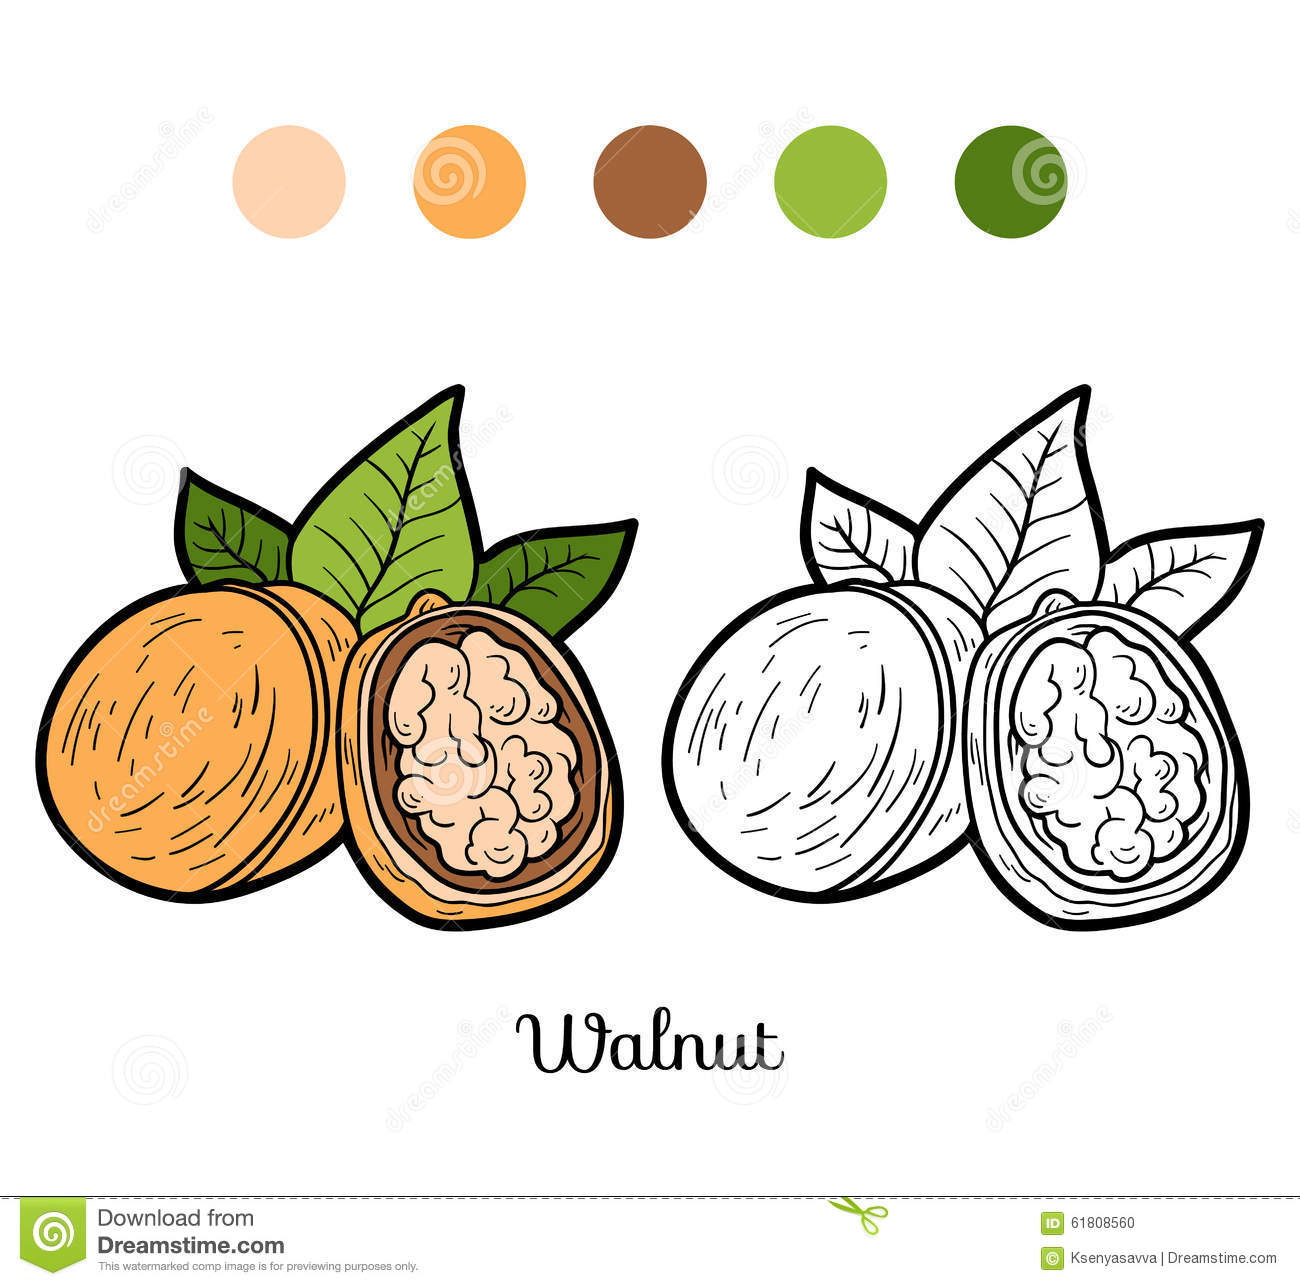 Coloring book pictures of vegetables - Coloring Book For Children Fruits And Vegetables Walnut Stock Photo